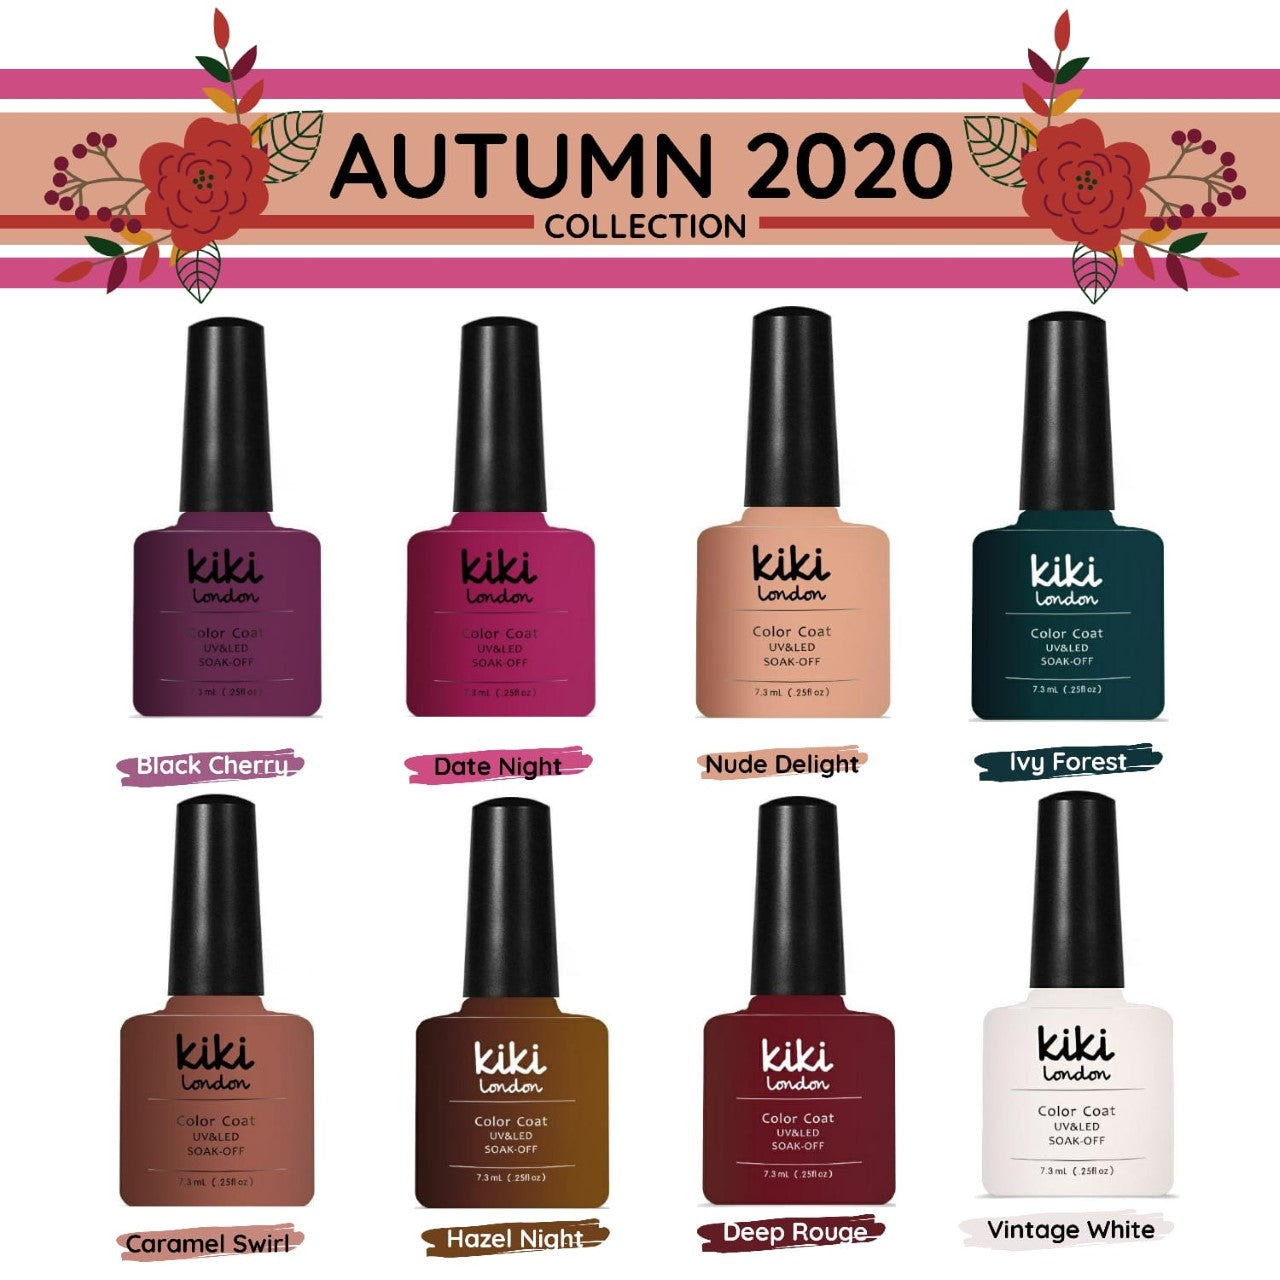 Autumn Collection 2020